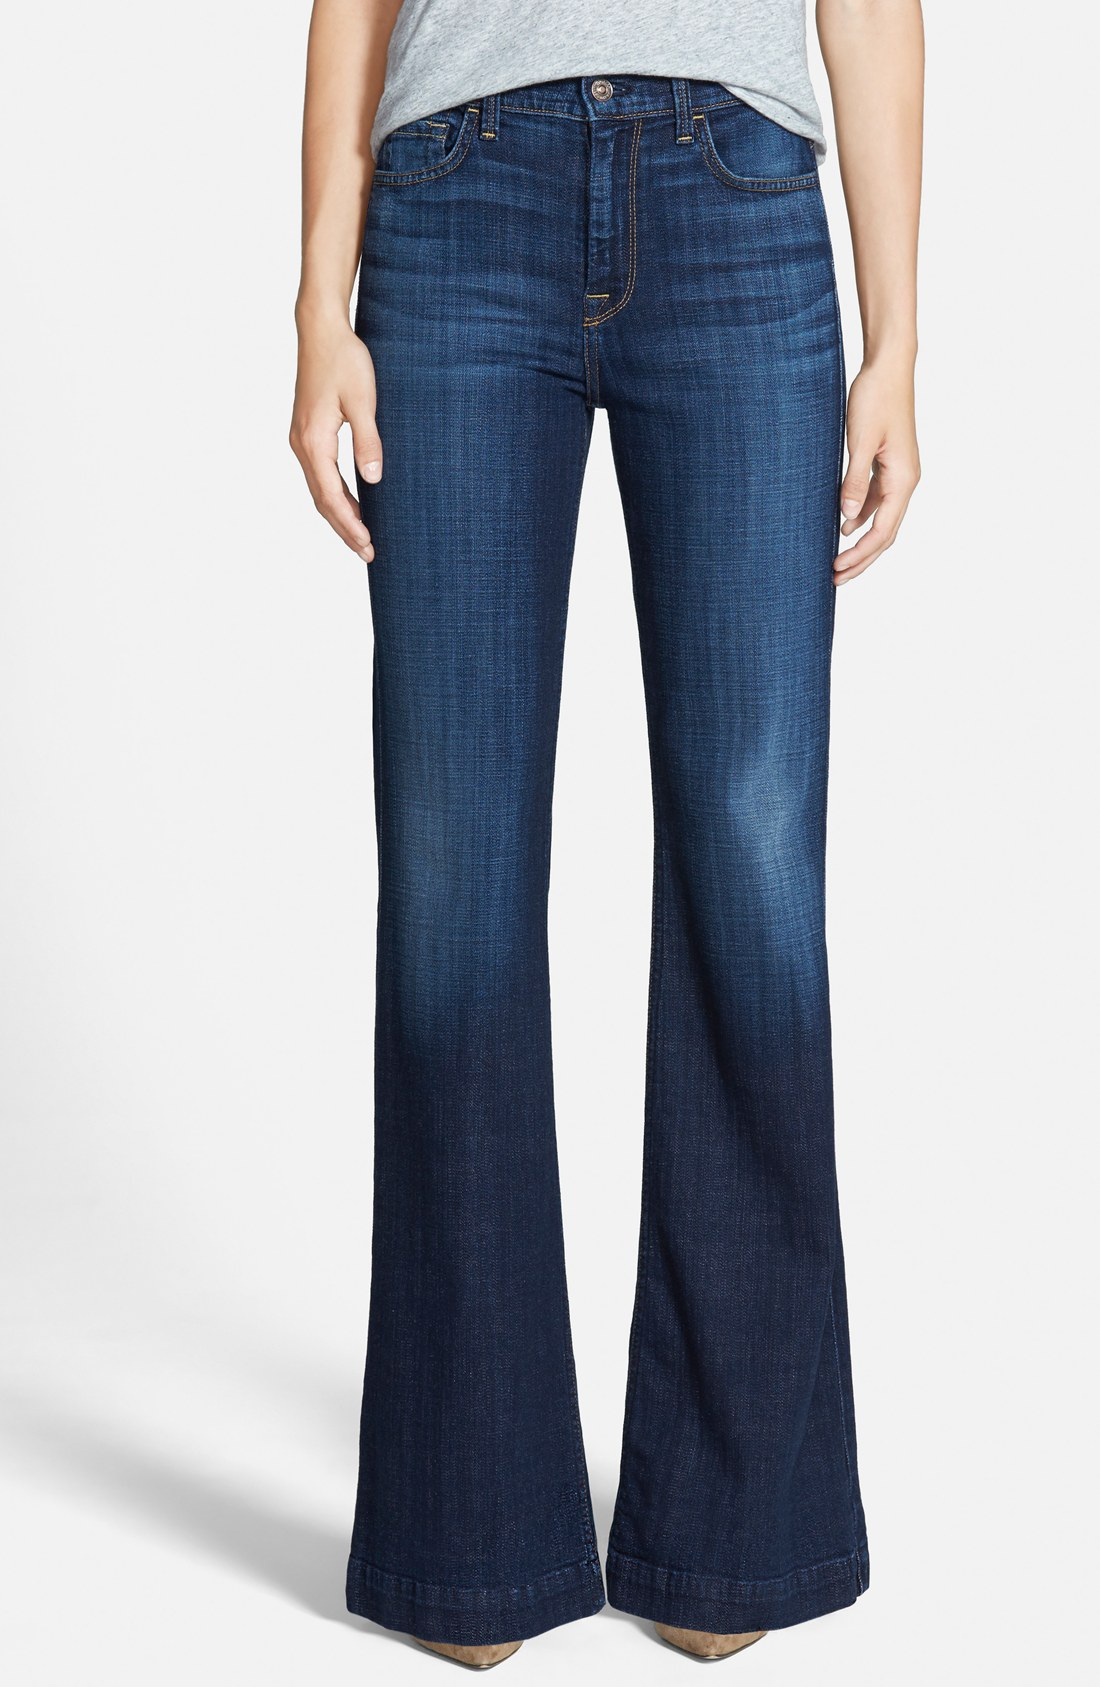 7 for all mankind® u0027gingeru0027 high rise flare jeans (royal broken twill) |  nordstrom QFUIWJL